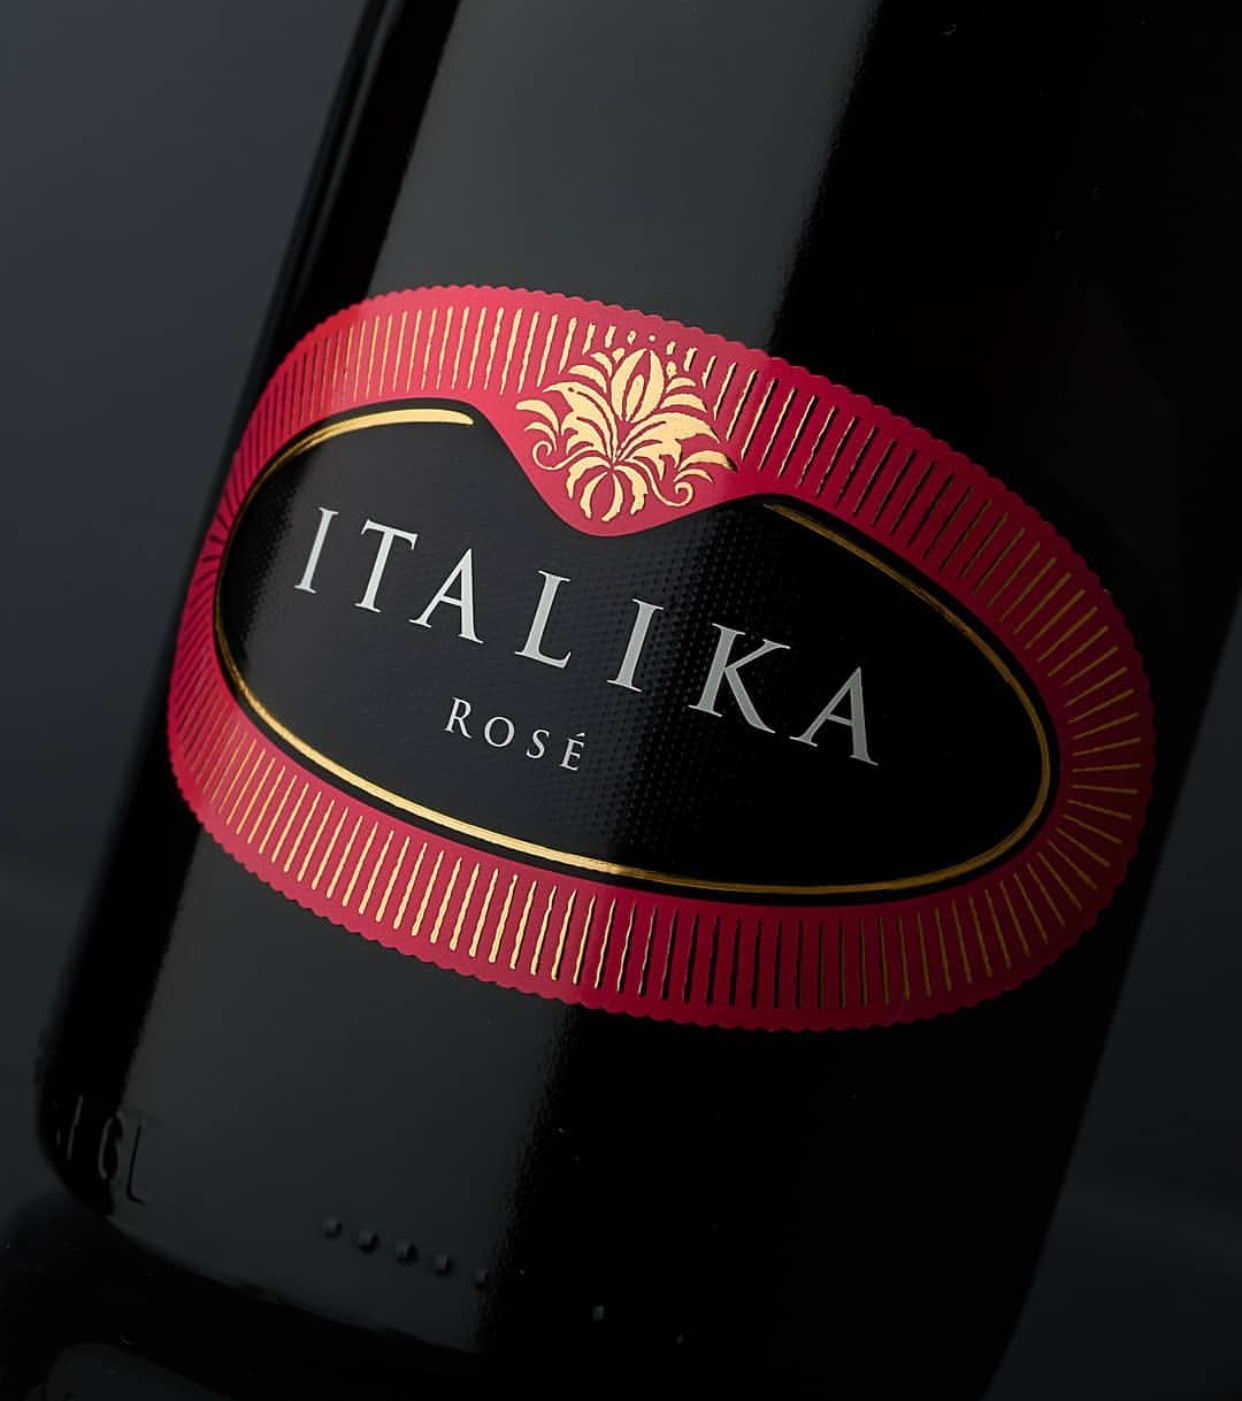 Pin By Guilhermecaio On Garbo With Images Beverage Packaging Awesome Wine Labels Wine Label